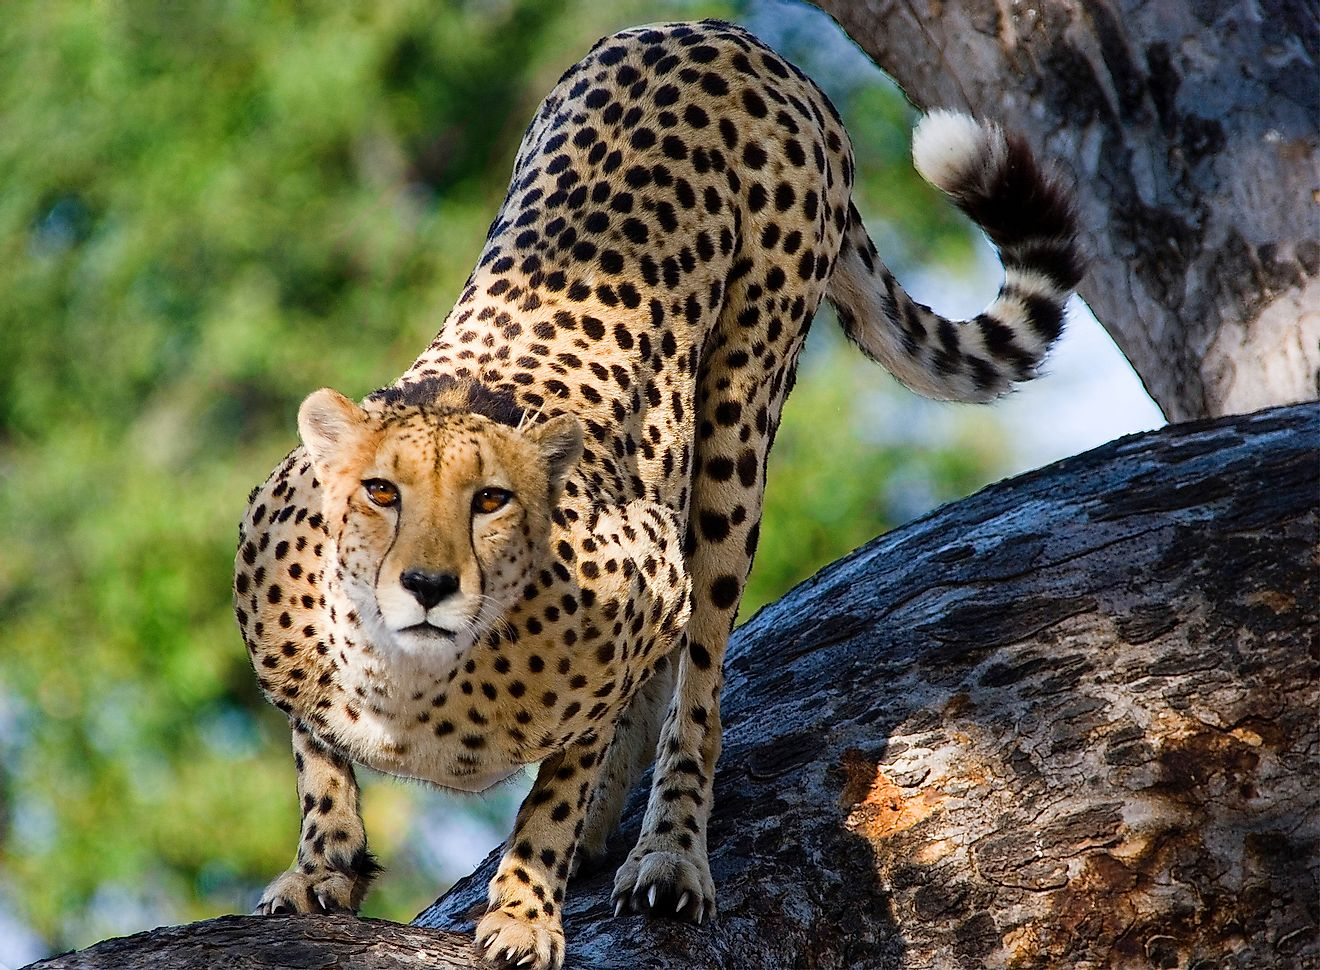 A cheetah is one of nature's most charismatic species.